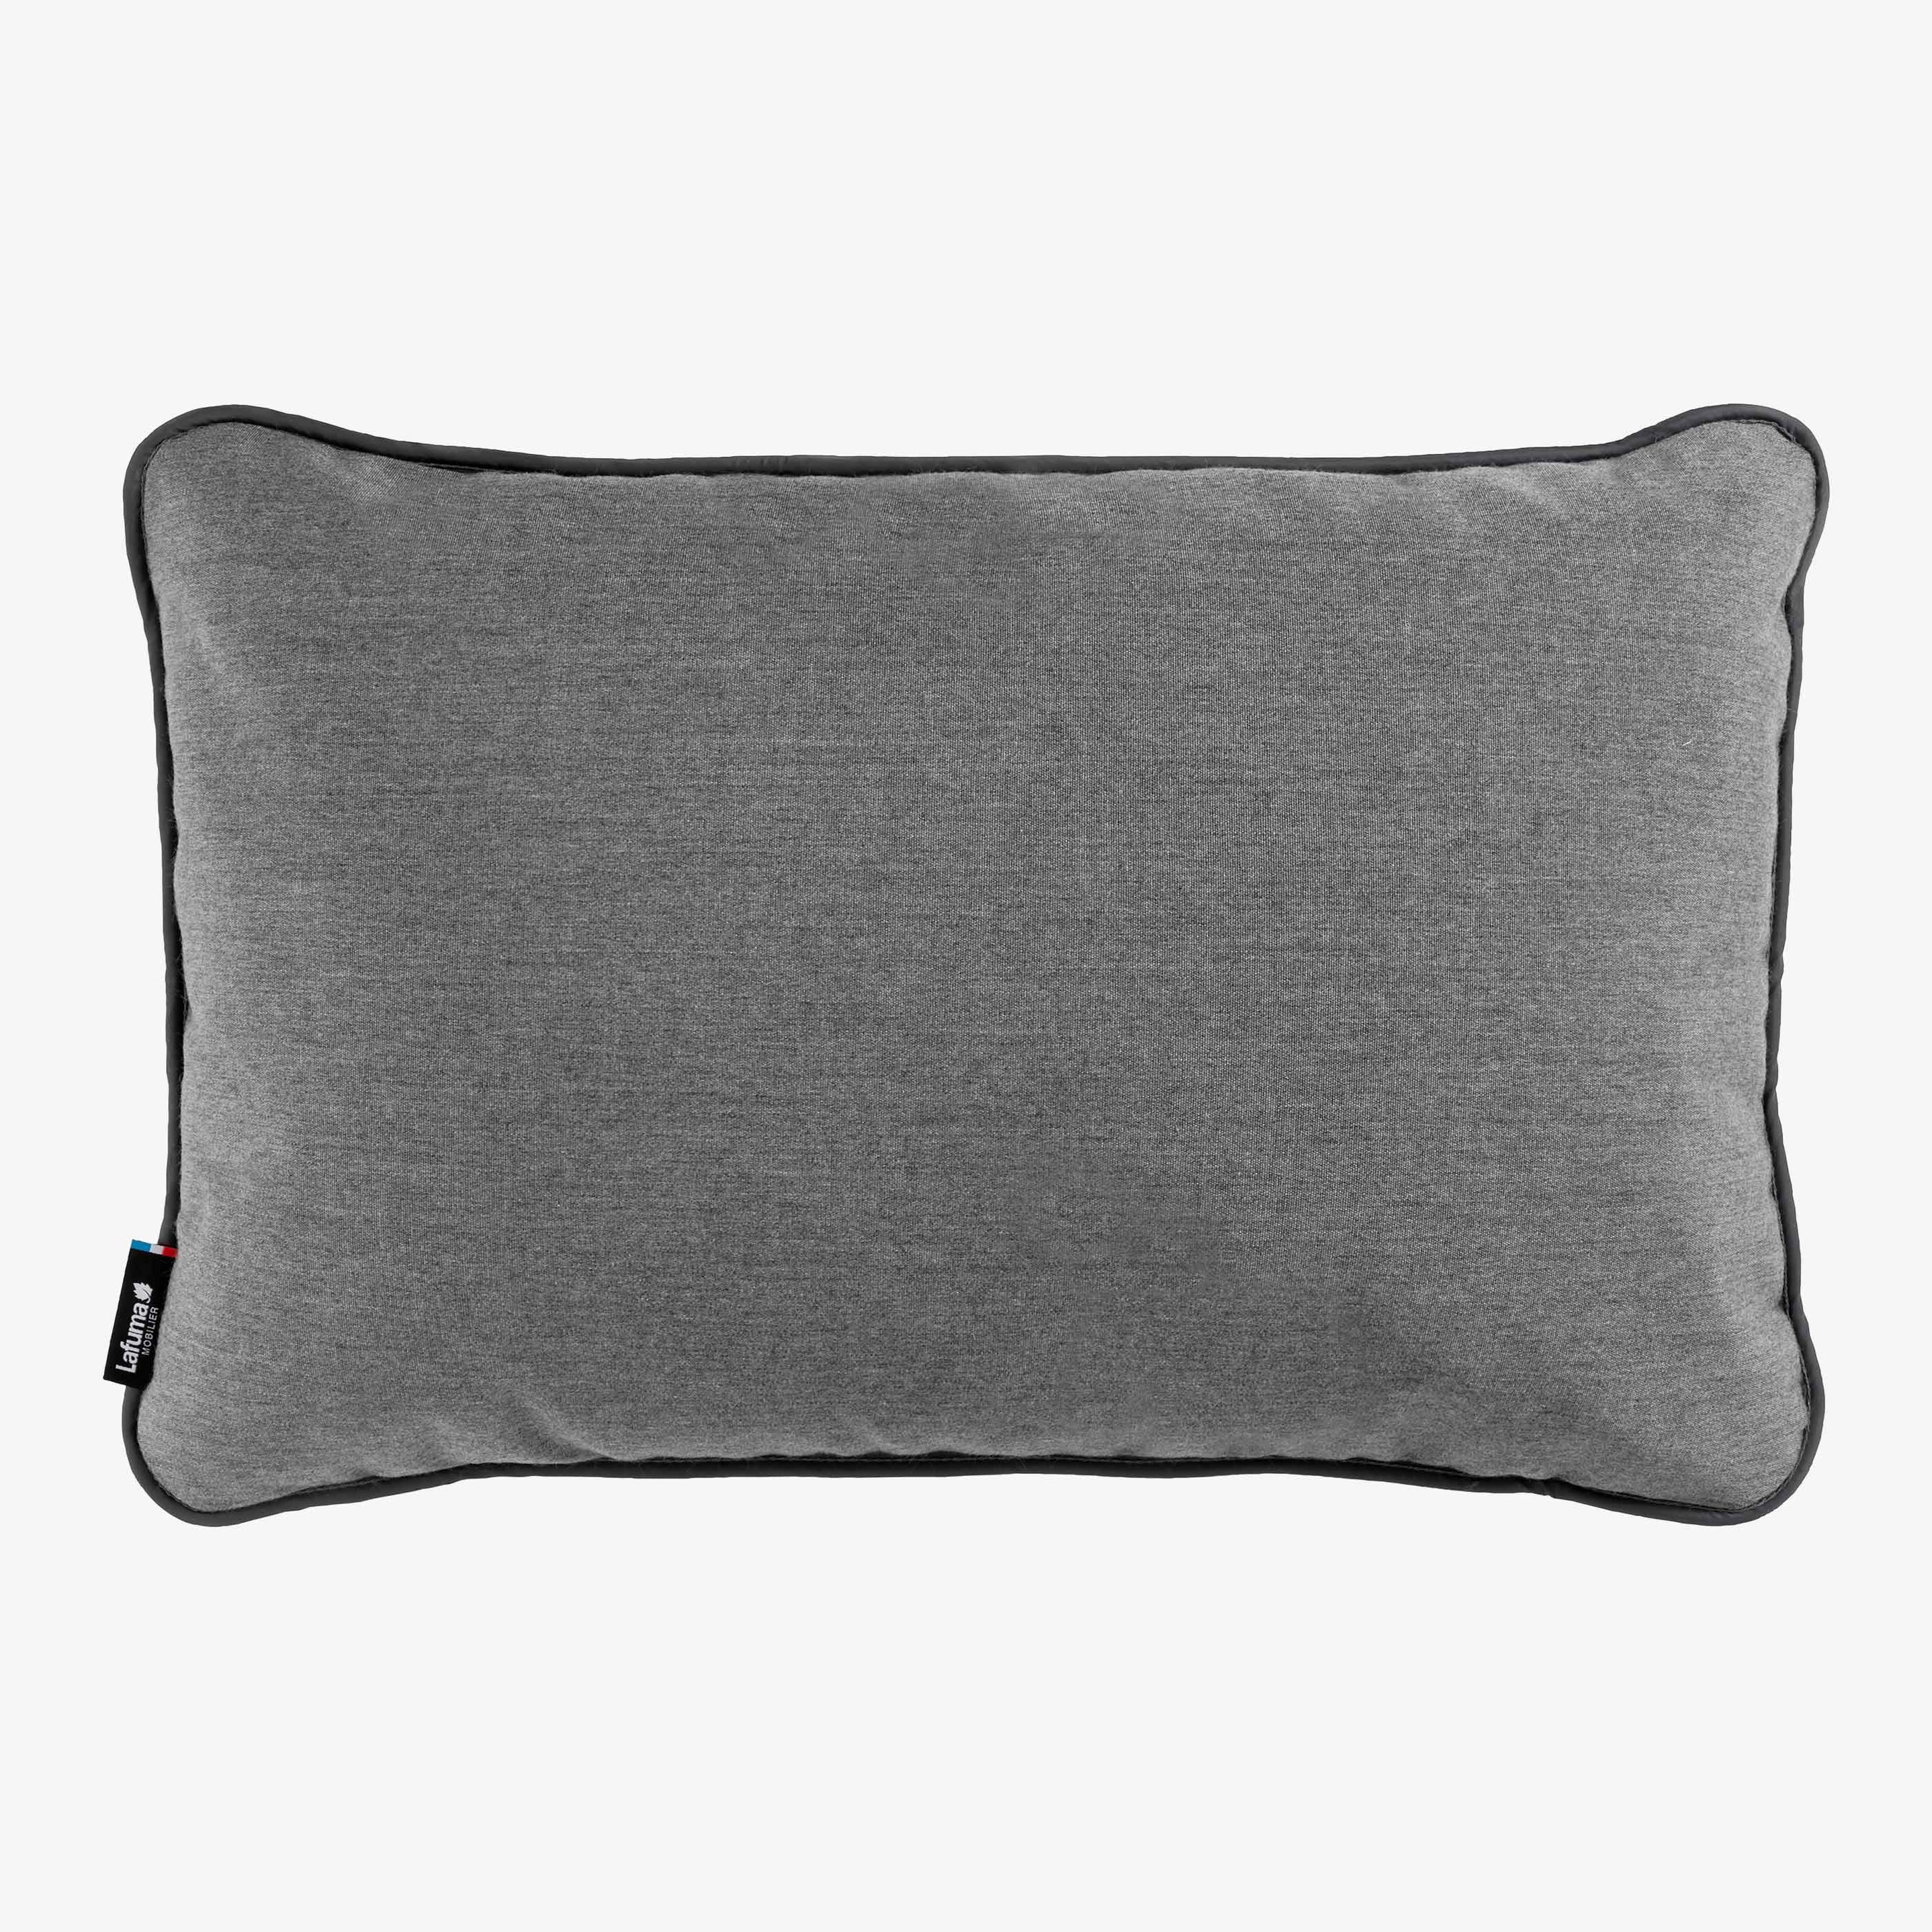 EROME COUSSIN RECTANGLE